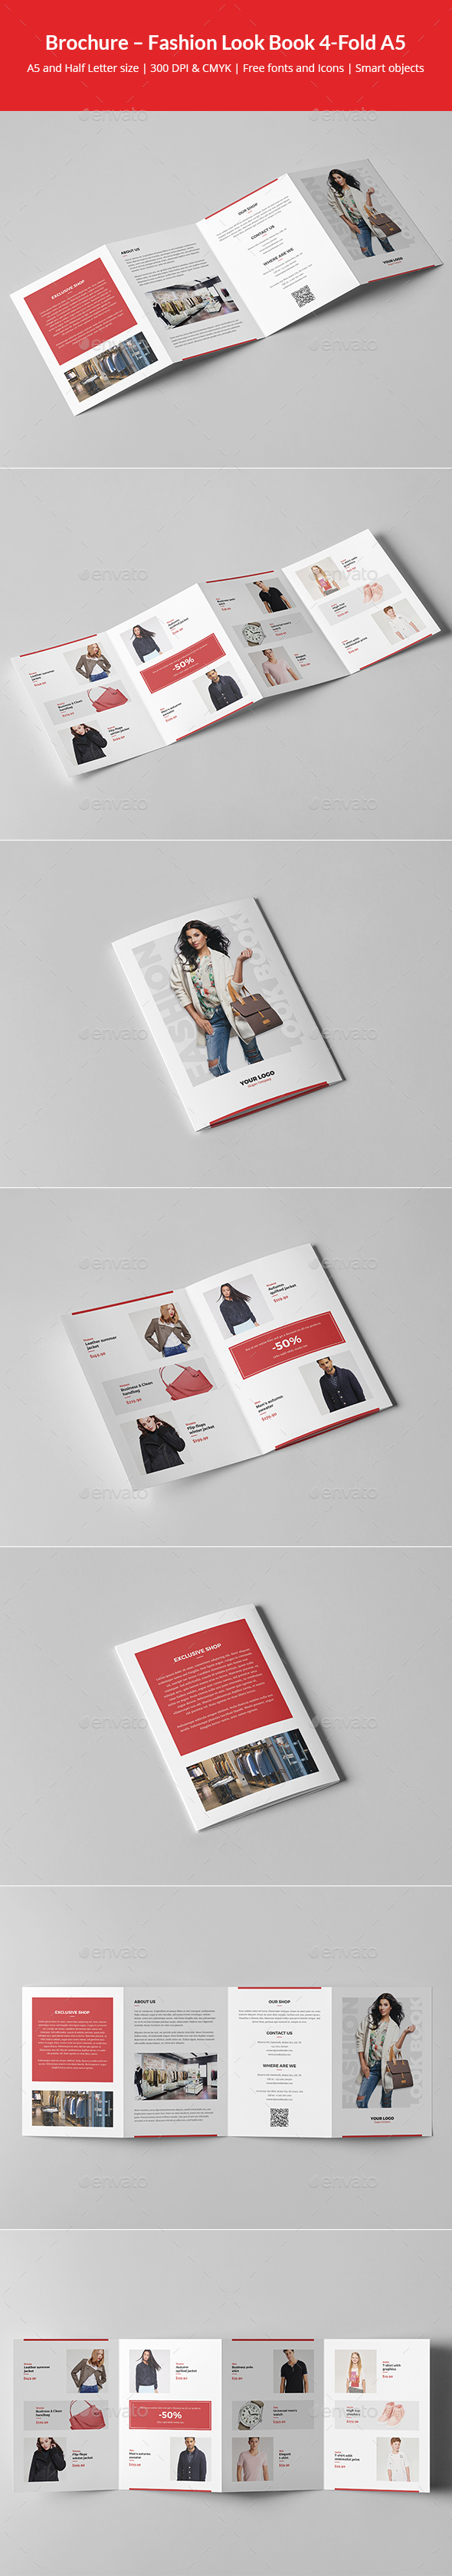 Brochure – Fashion Look Book 4-Fold A5 - Informational Brochures